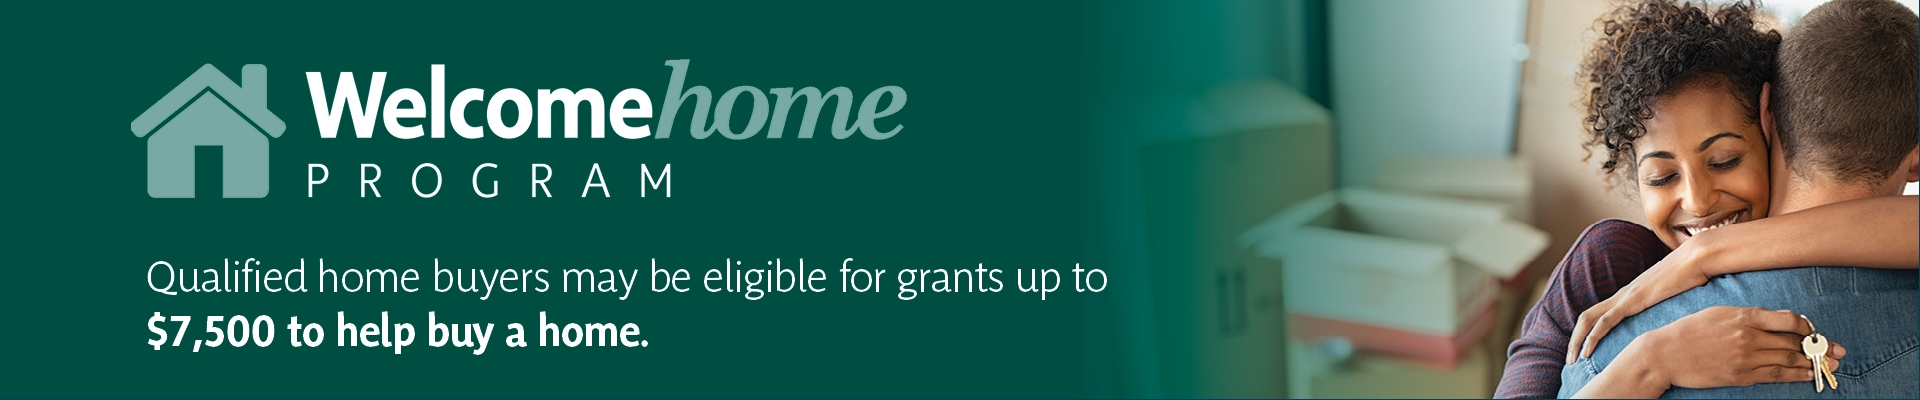 Welcome Home - Couple Hugging in New Home - Grants up to $7500 Banner